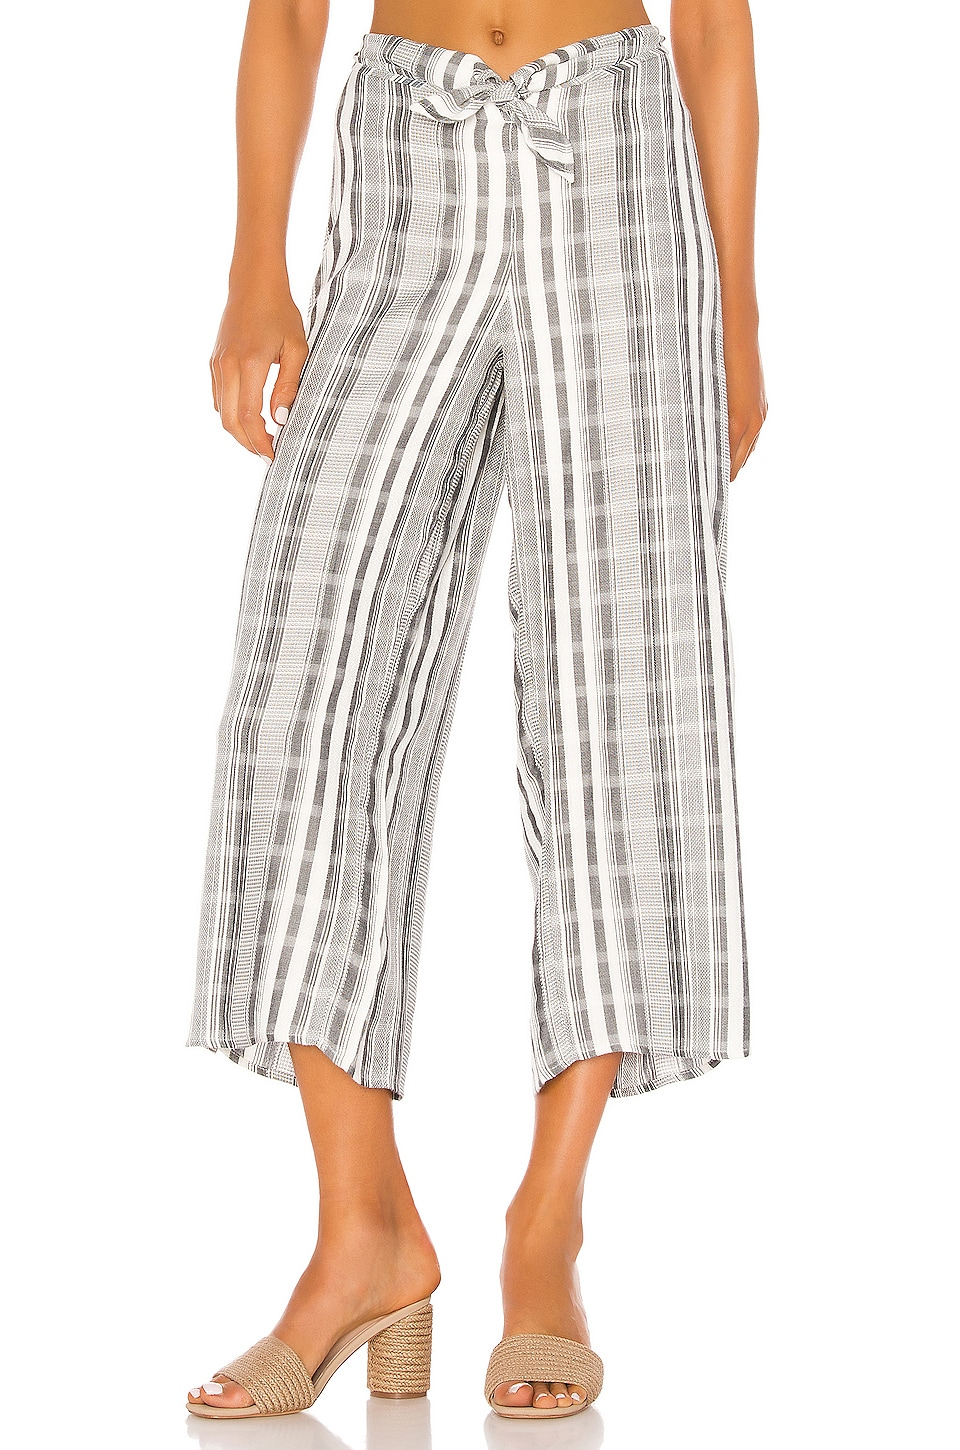 L*SPACE Lana Pant in PCH Stripe